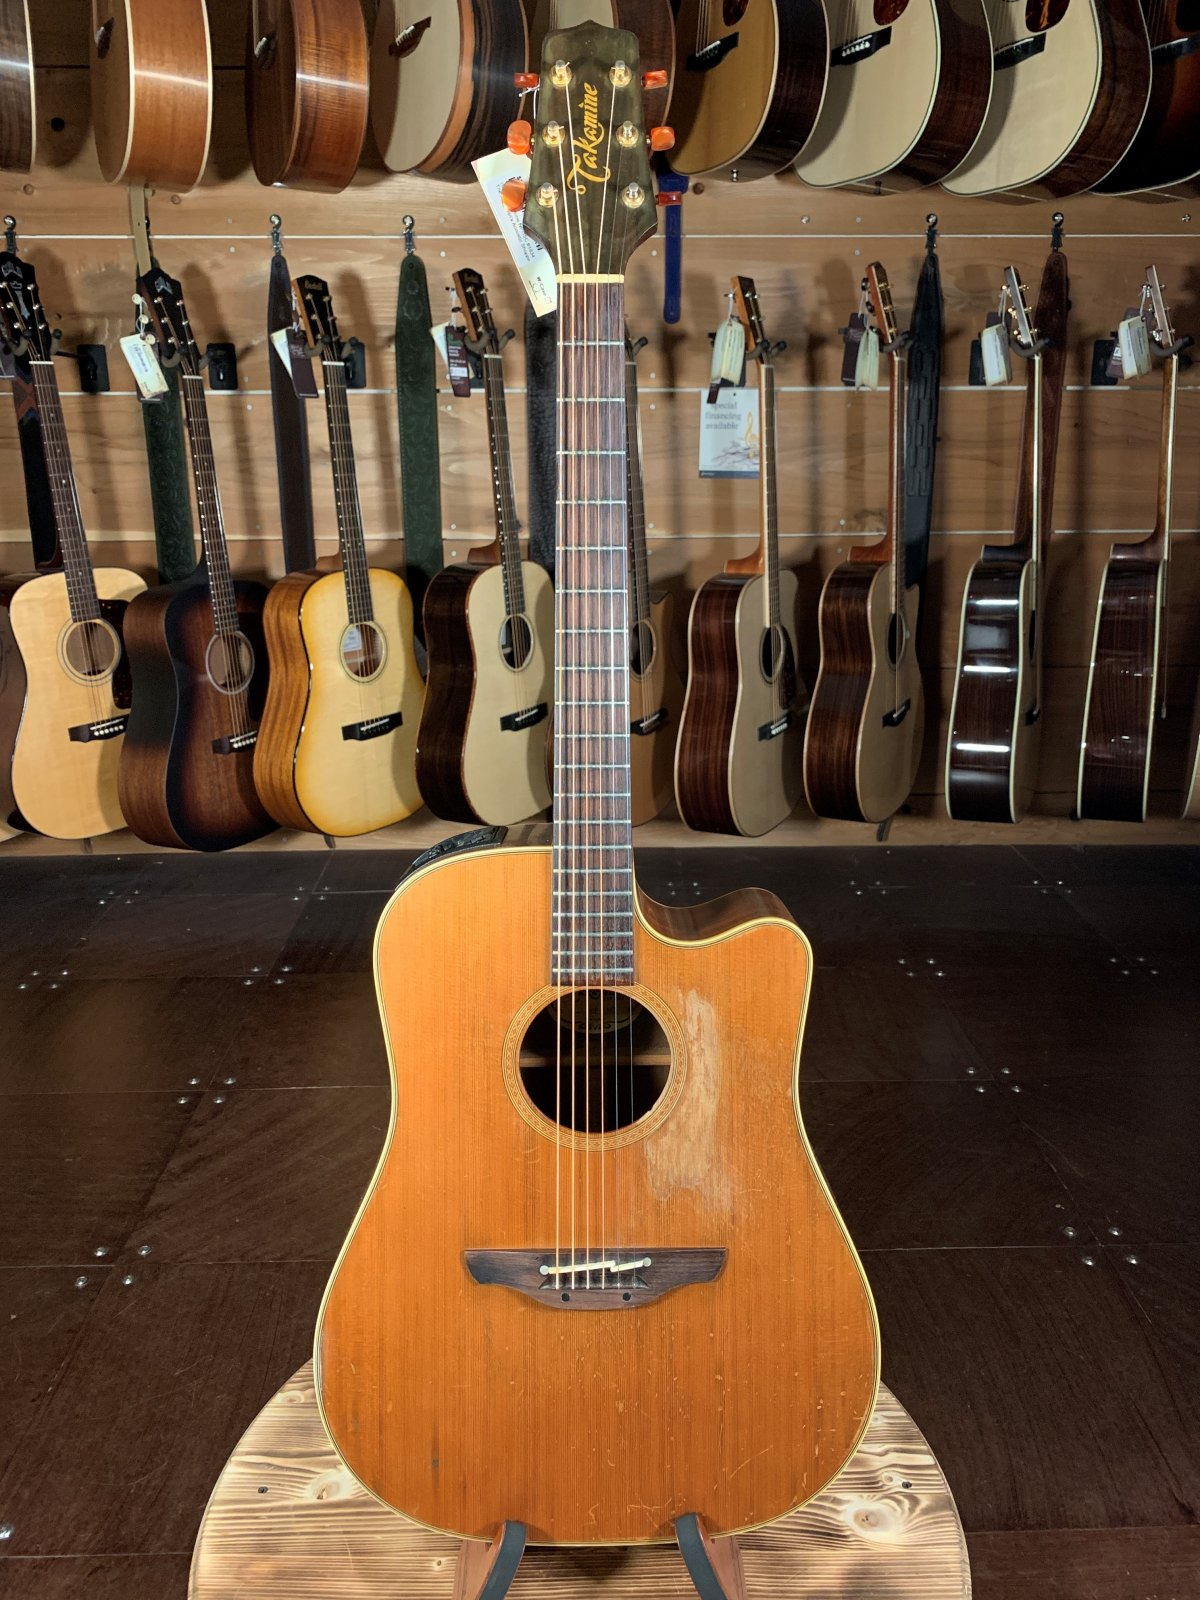 (Used) Takamine NP-15C #1634 Acoustic Guitar